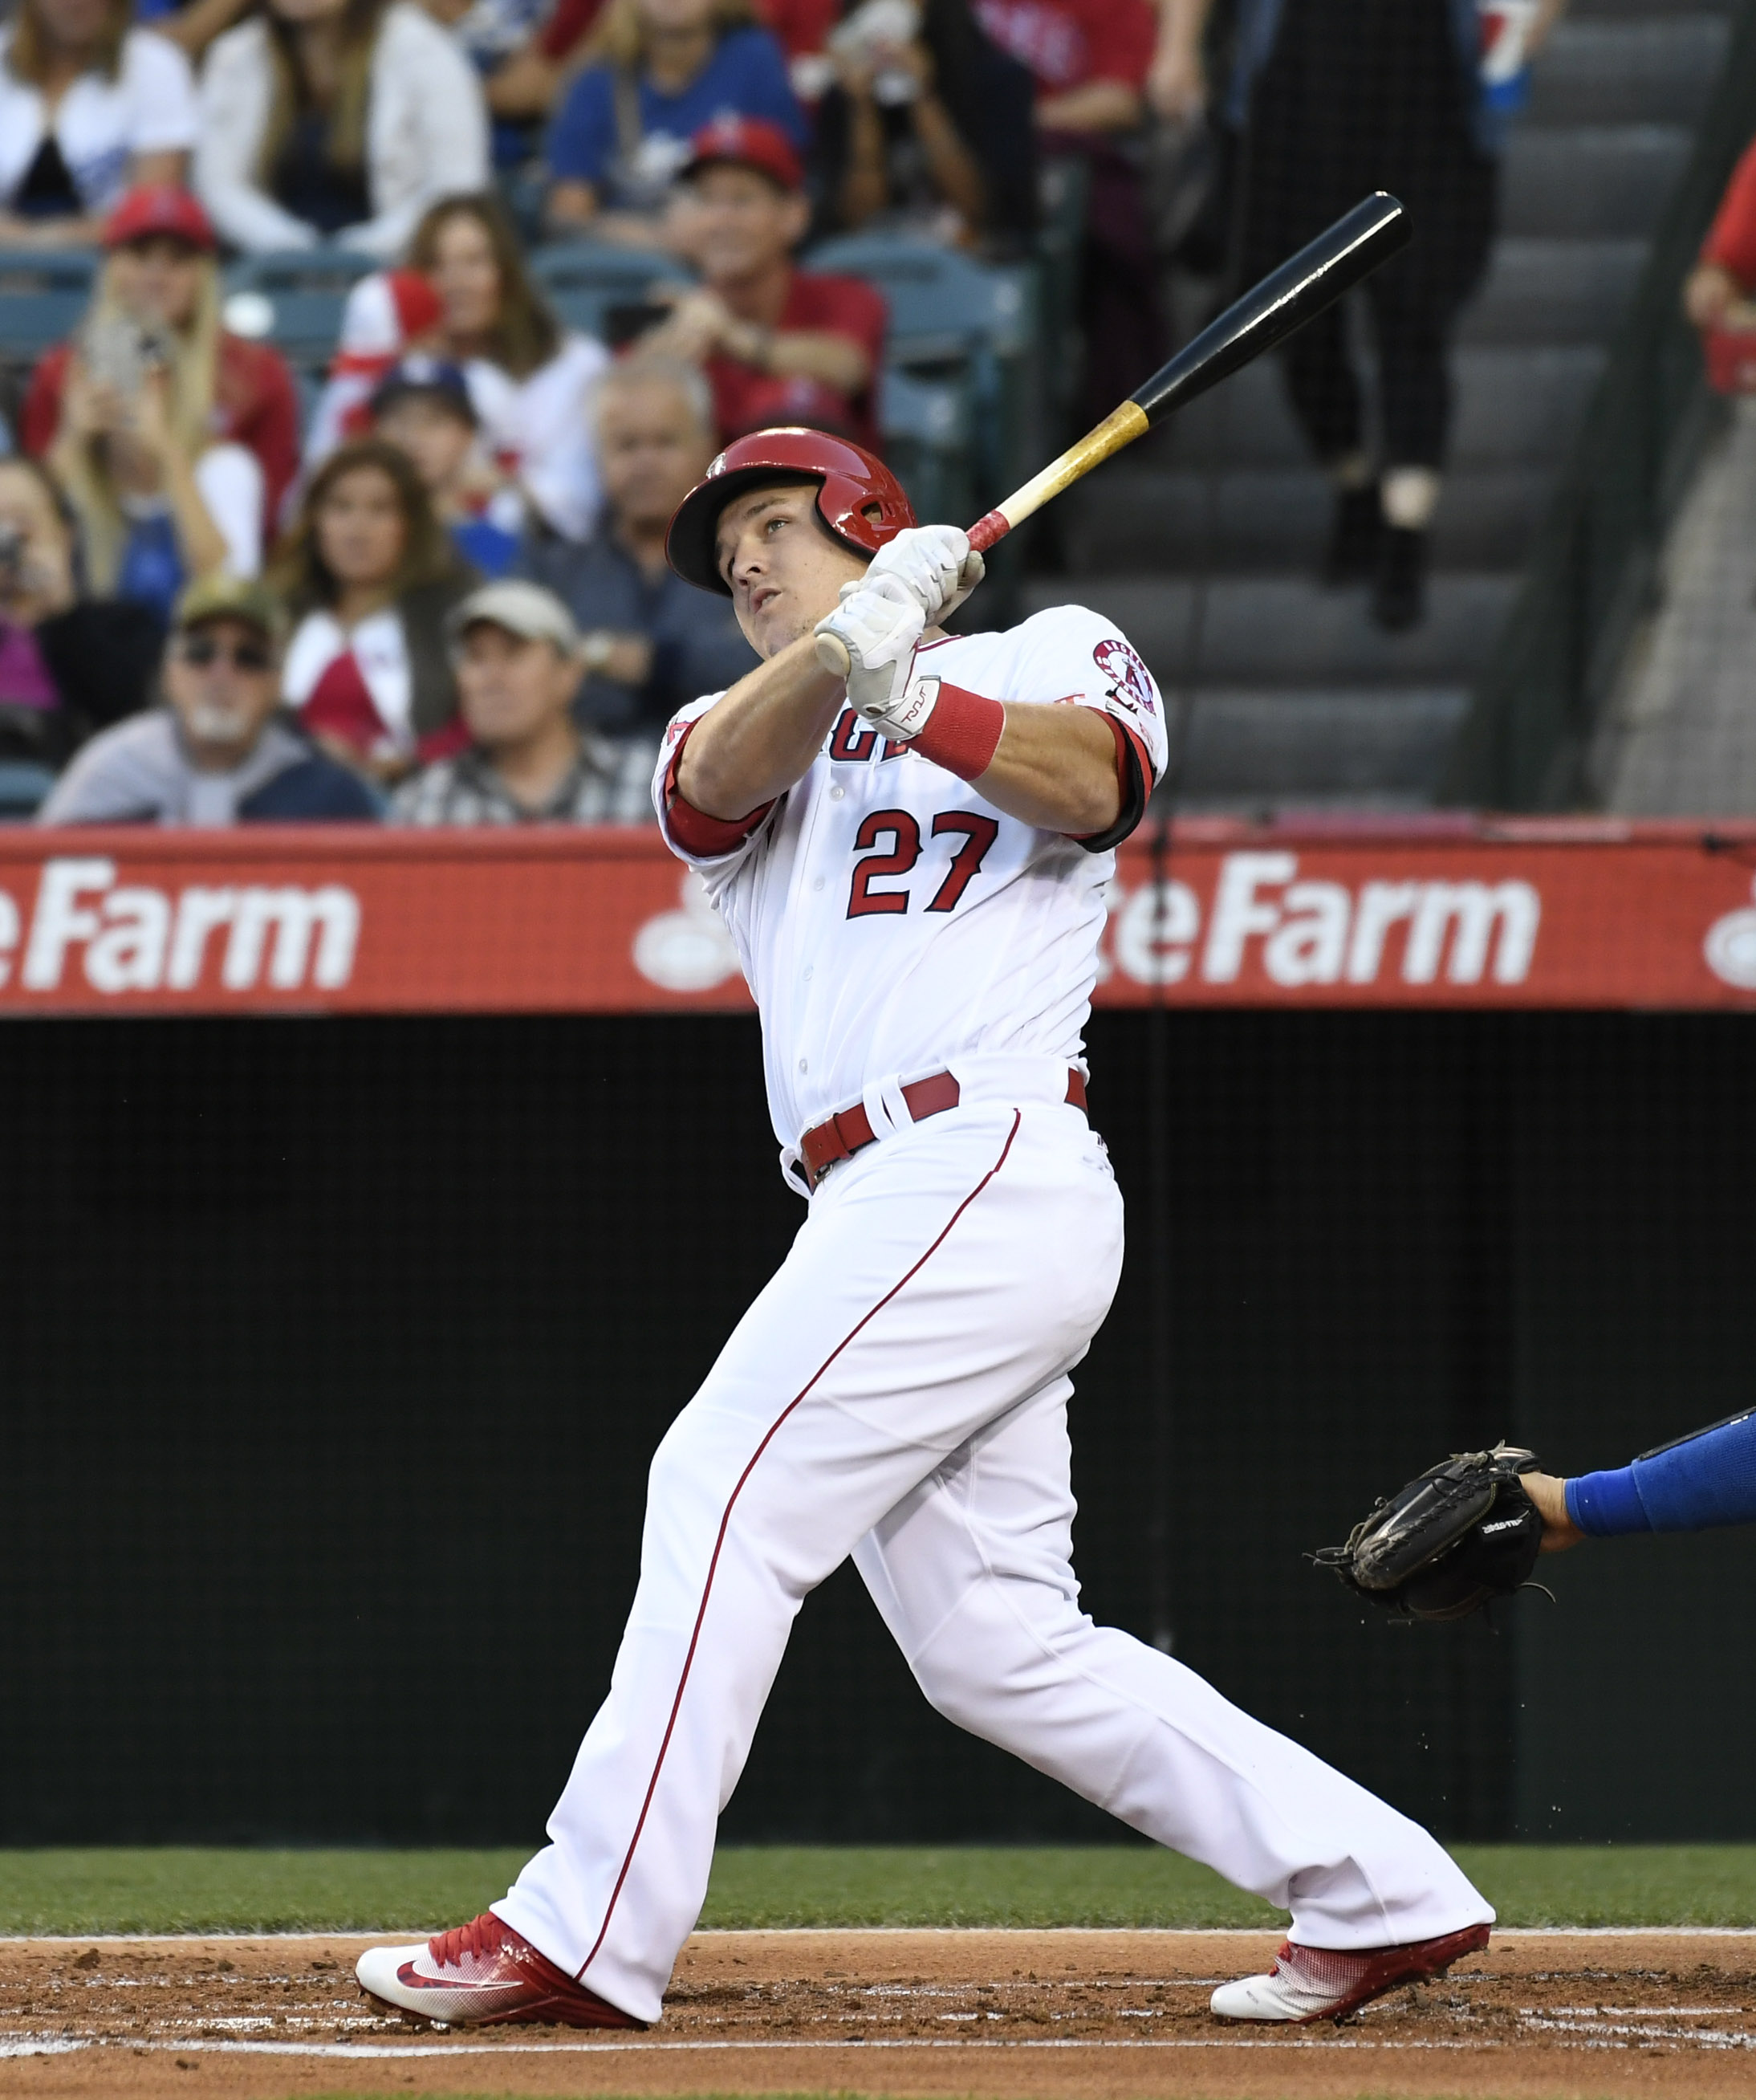 Yawn, just another Mike Trout home run.